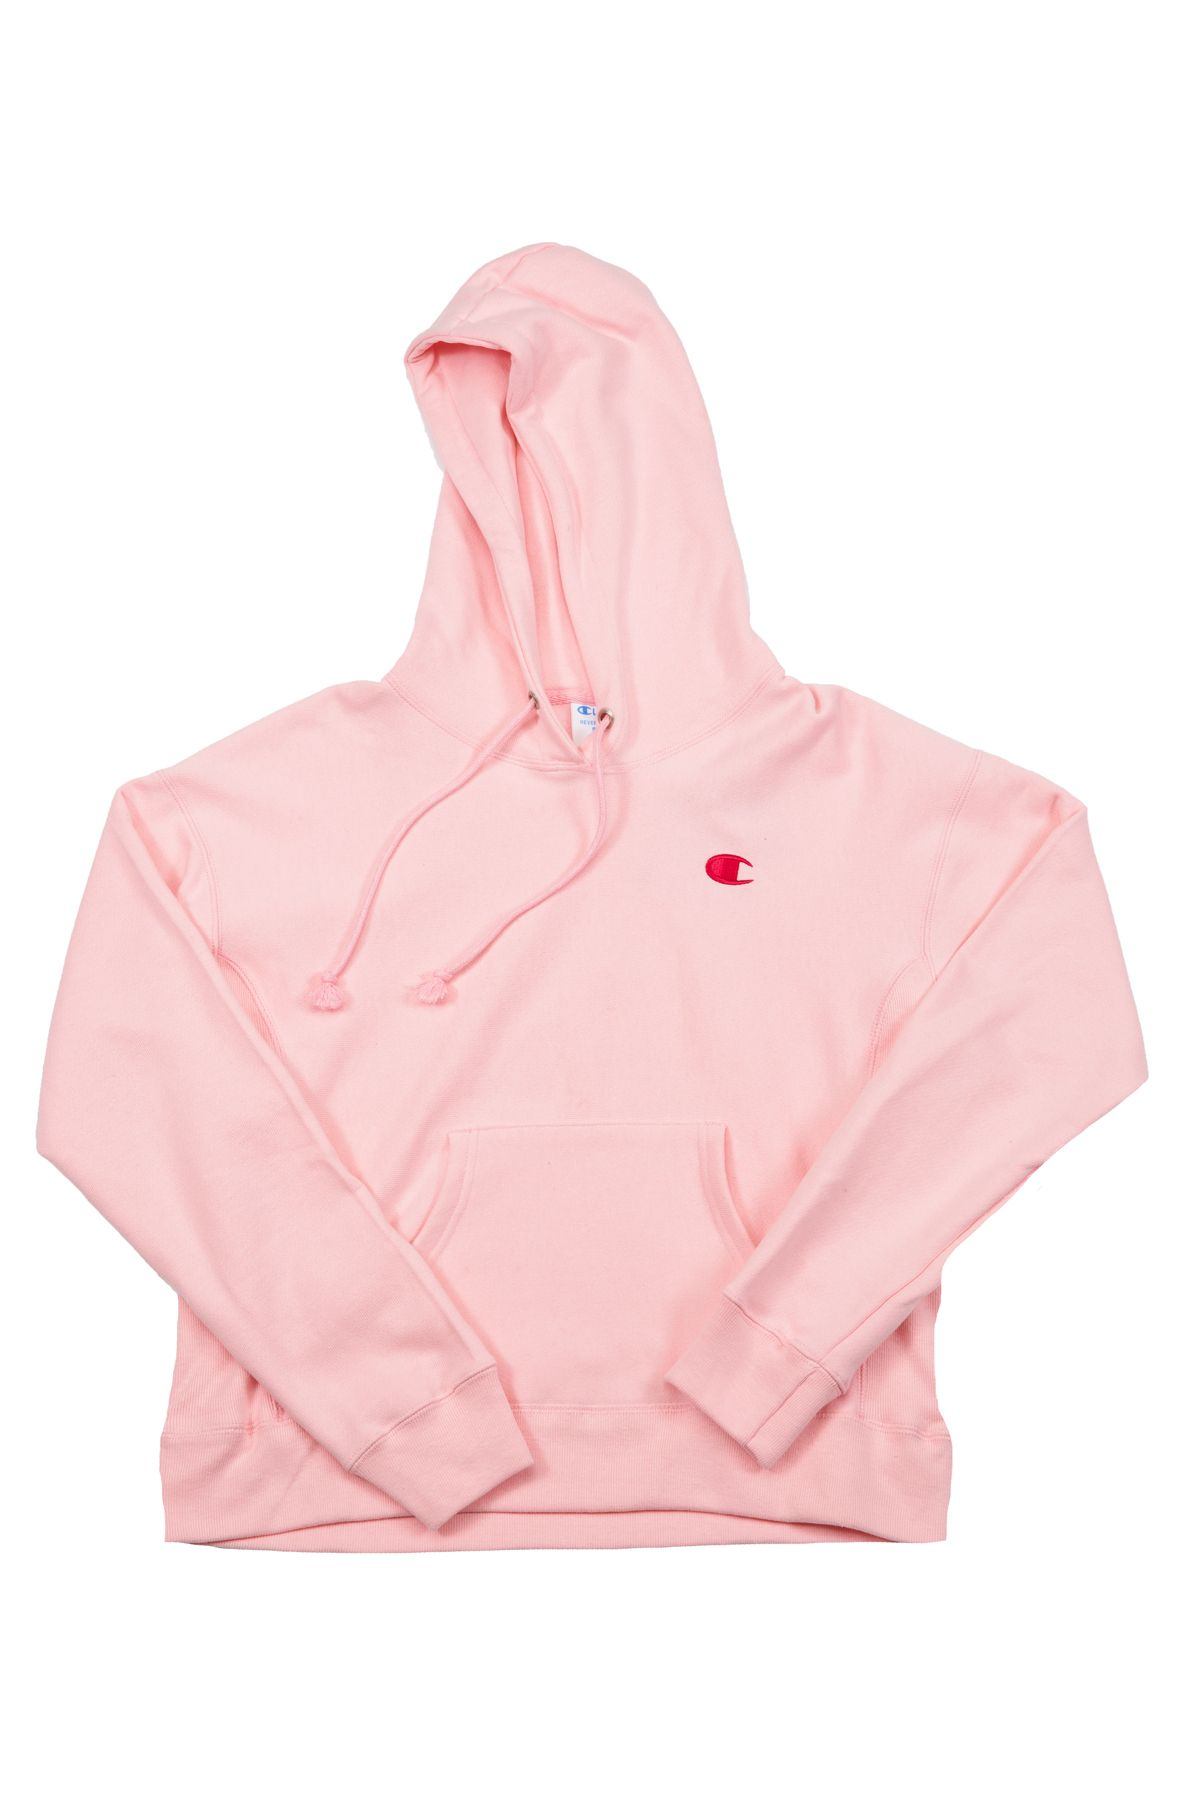 Reverse Weave Pullover Hoodie Pink Candy Pullover Hoodie Hoodies Pink Hoodie [ 1800 x 1180 Pixel ]